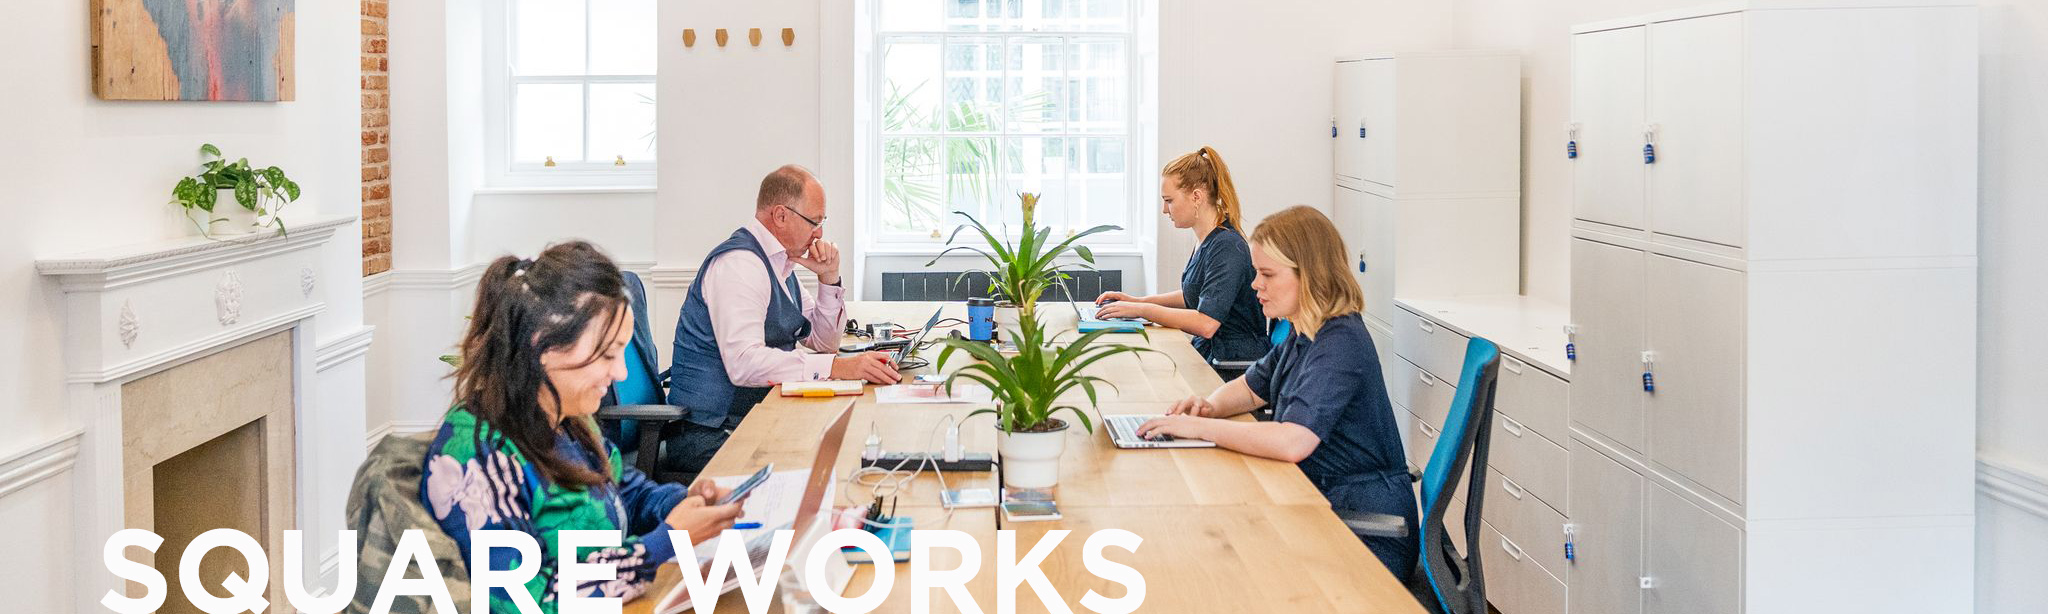 square-works-co-working-space-bristol